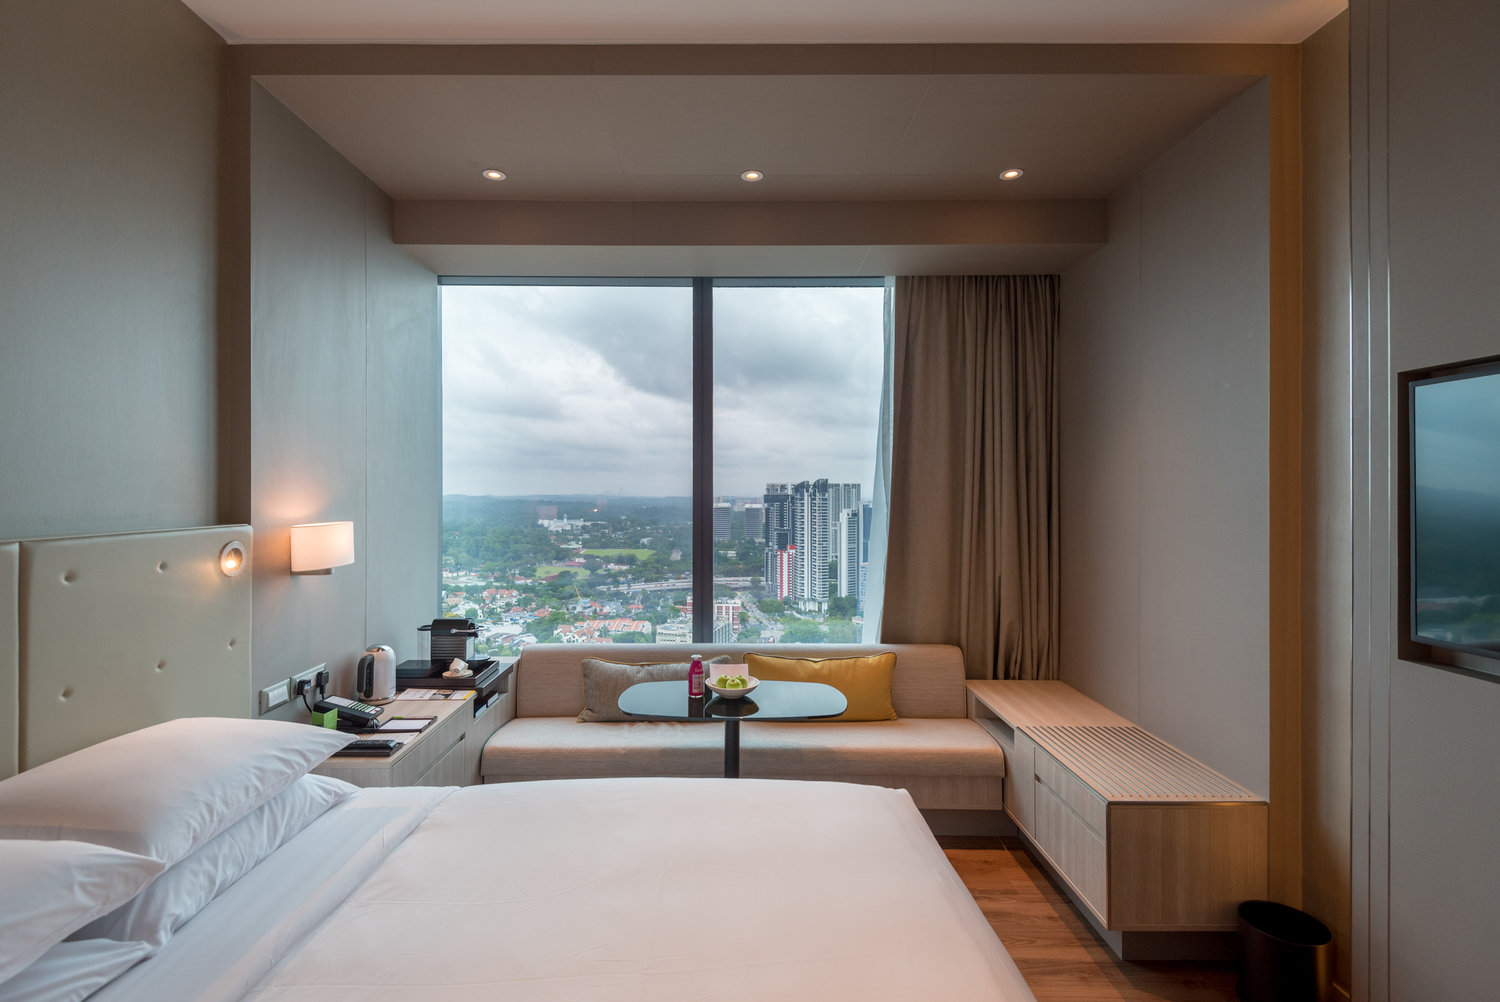 Hotel Review: Courtyard by Marriott Singapore Novena (Premier Skyline Room)